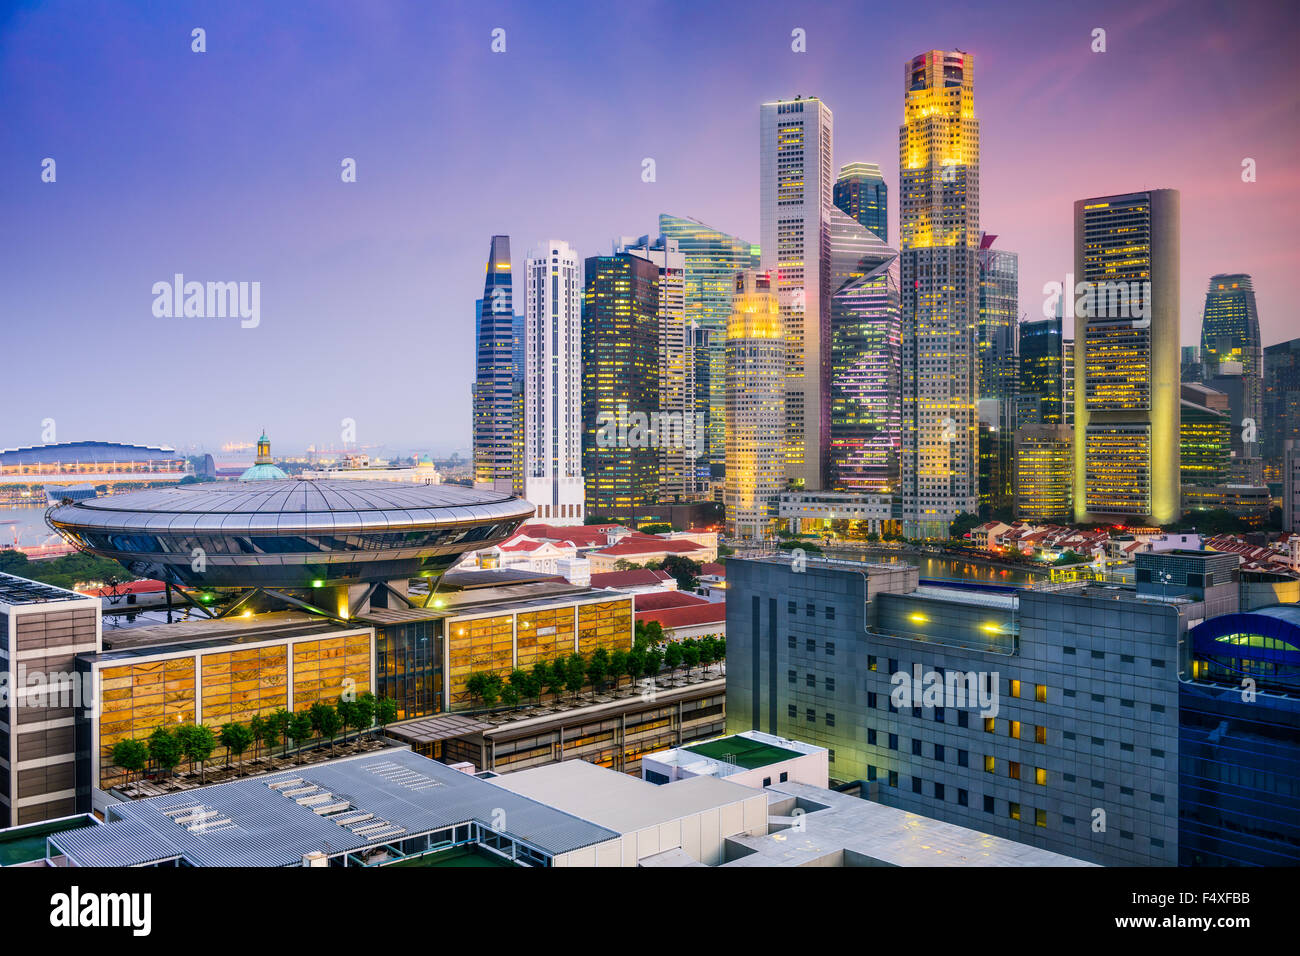 Singapore skyline. - Stock Image